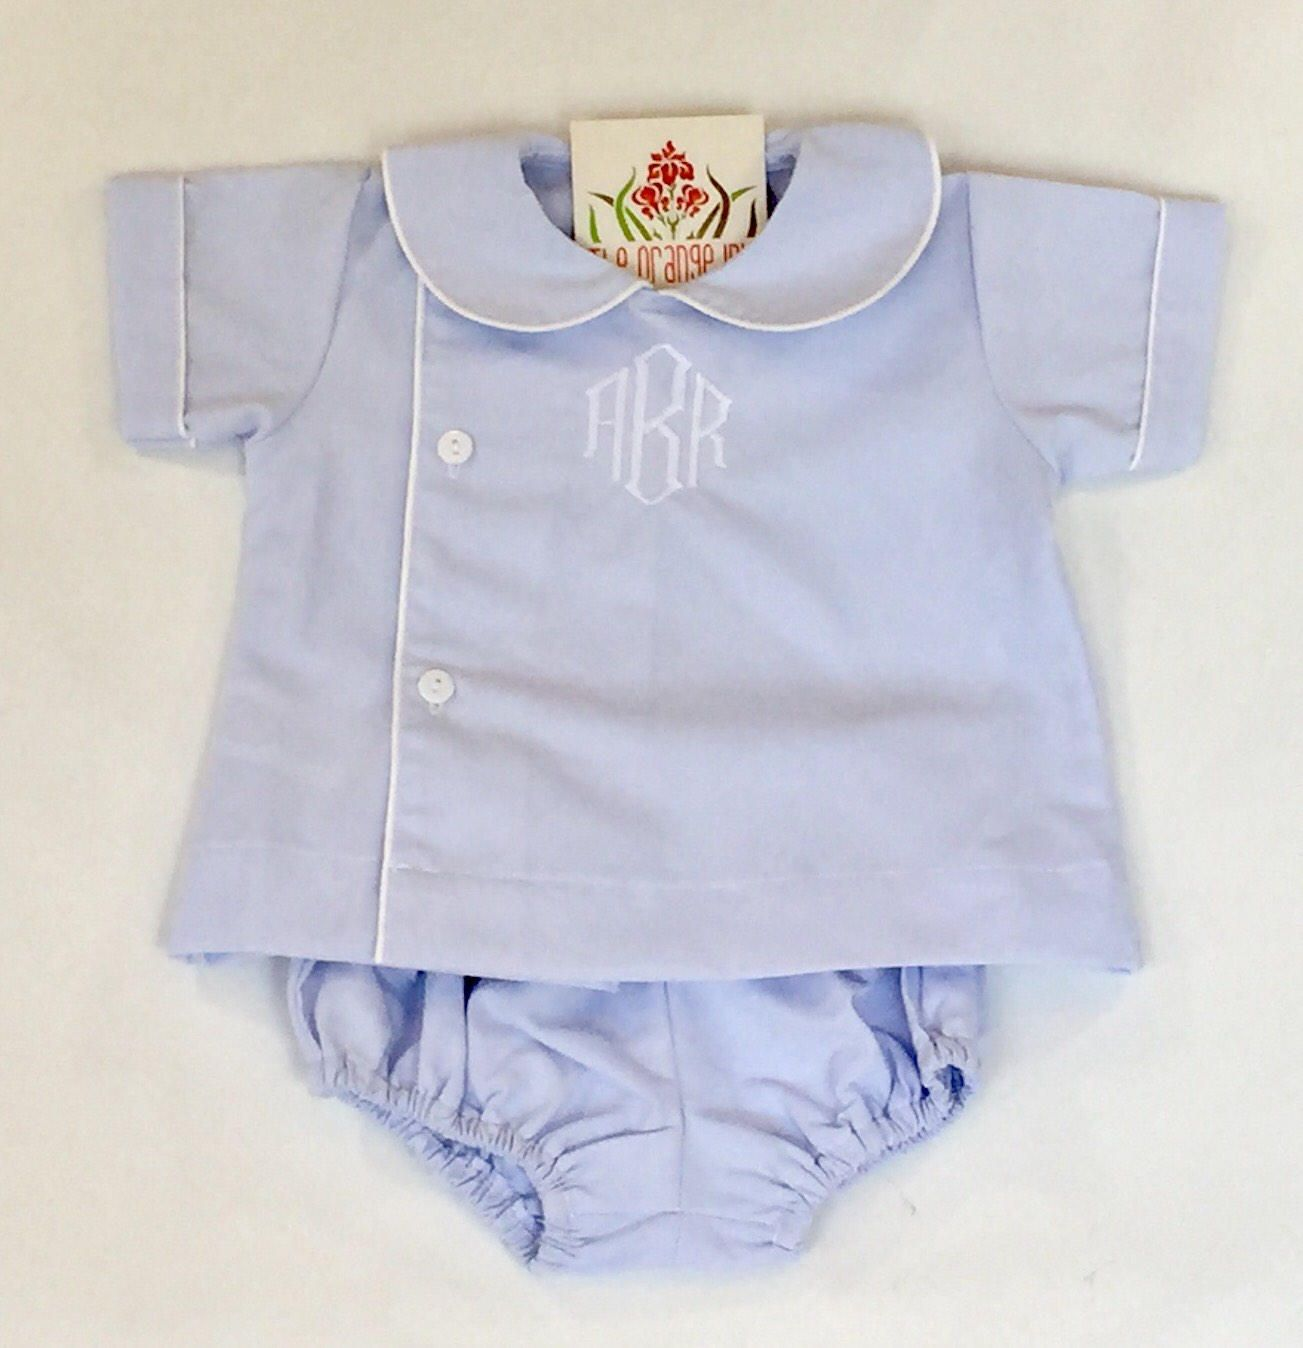 Monogrammed boys diaper set personalized baby gifts monogrammed boys diaper set personalized baby gifts personalized baby outfit baby boy bubble negle Choice Image